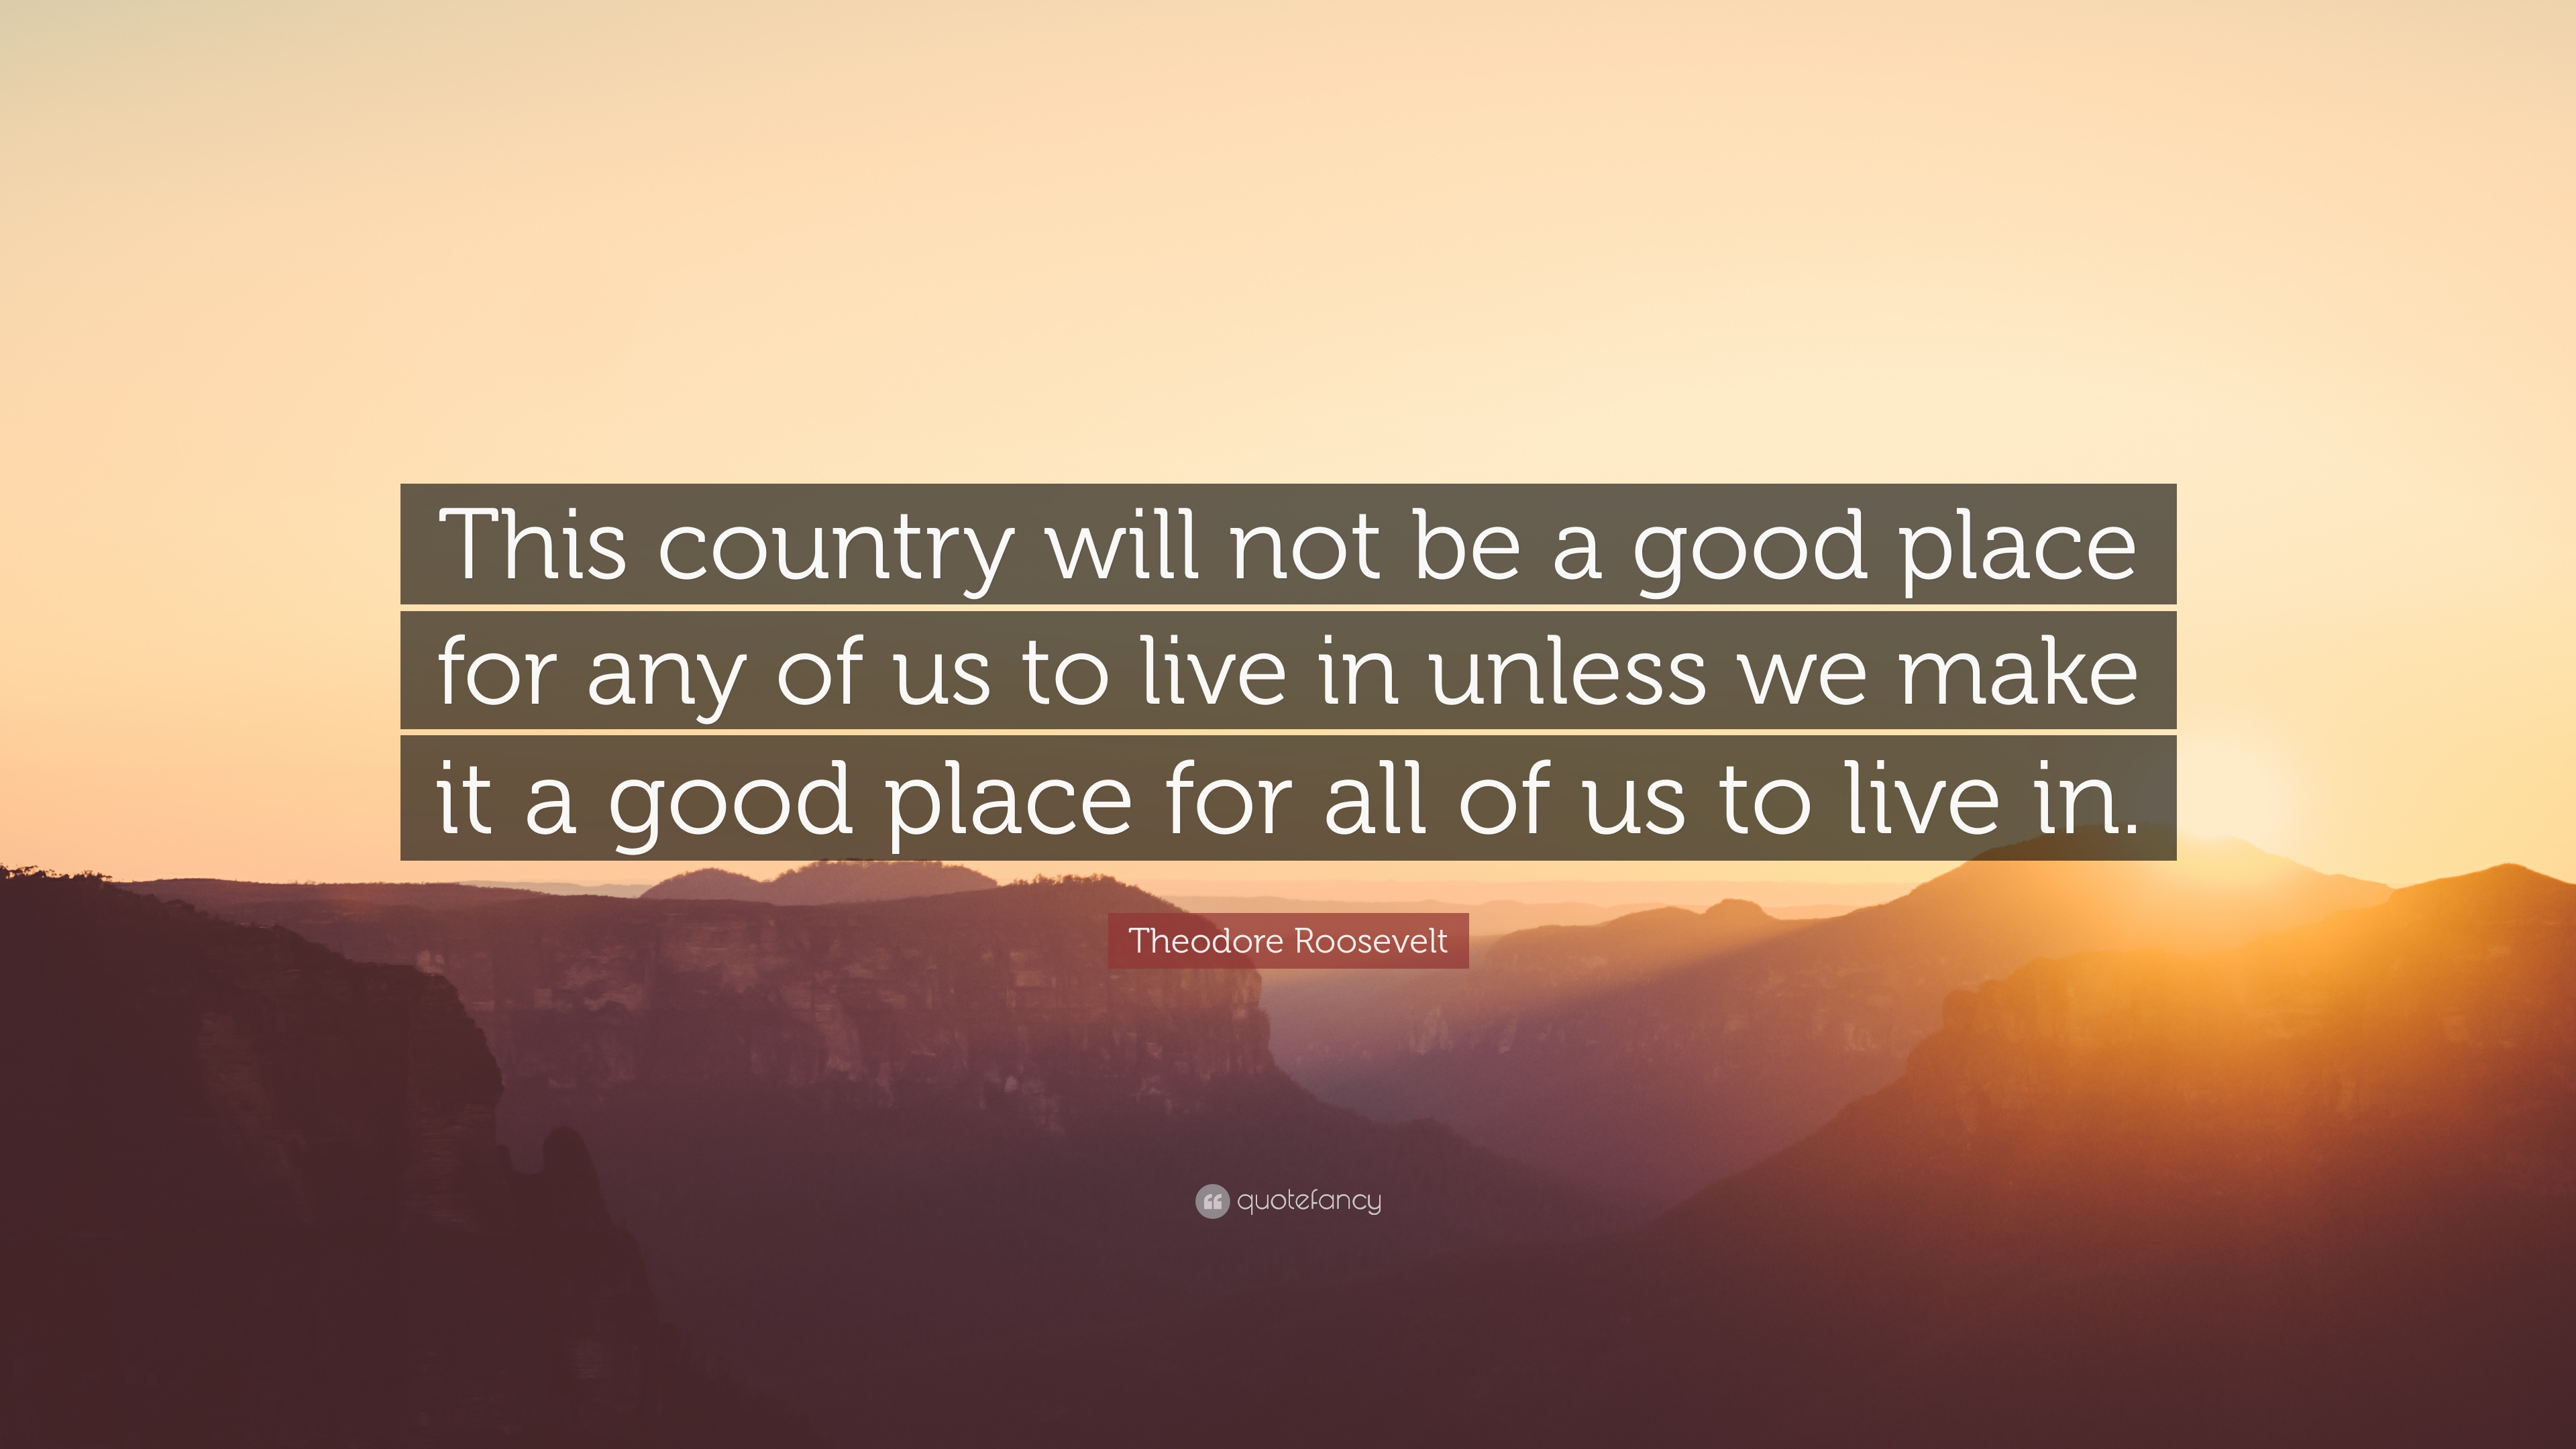 4th Of July Quotes This Country Will Not Be A Good Place For Any